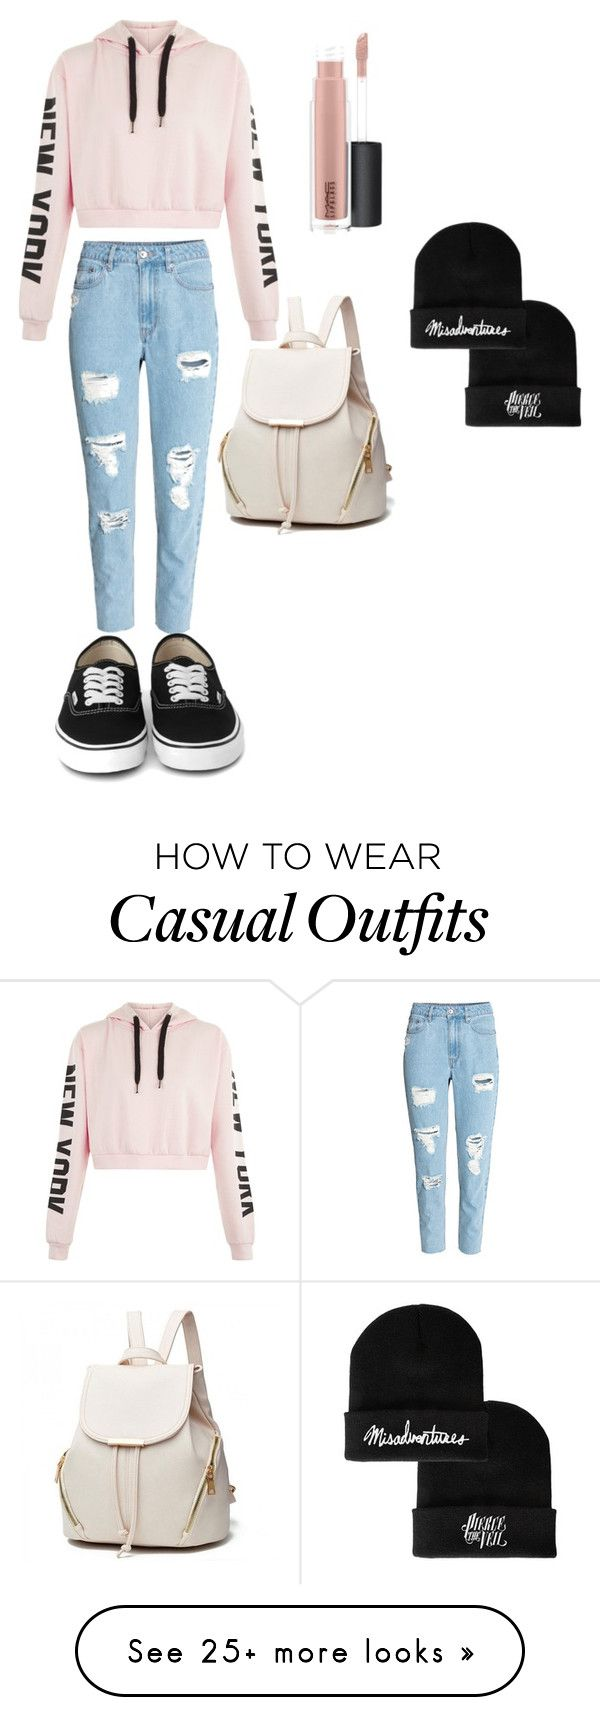 """Casual"" by fleurstevens on Polyvore featuring H&M and MAC Cosmetics"